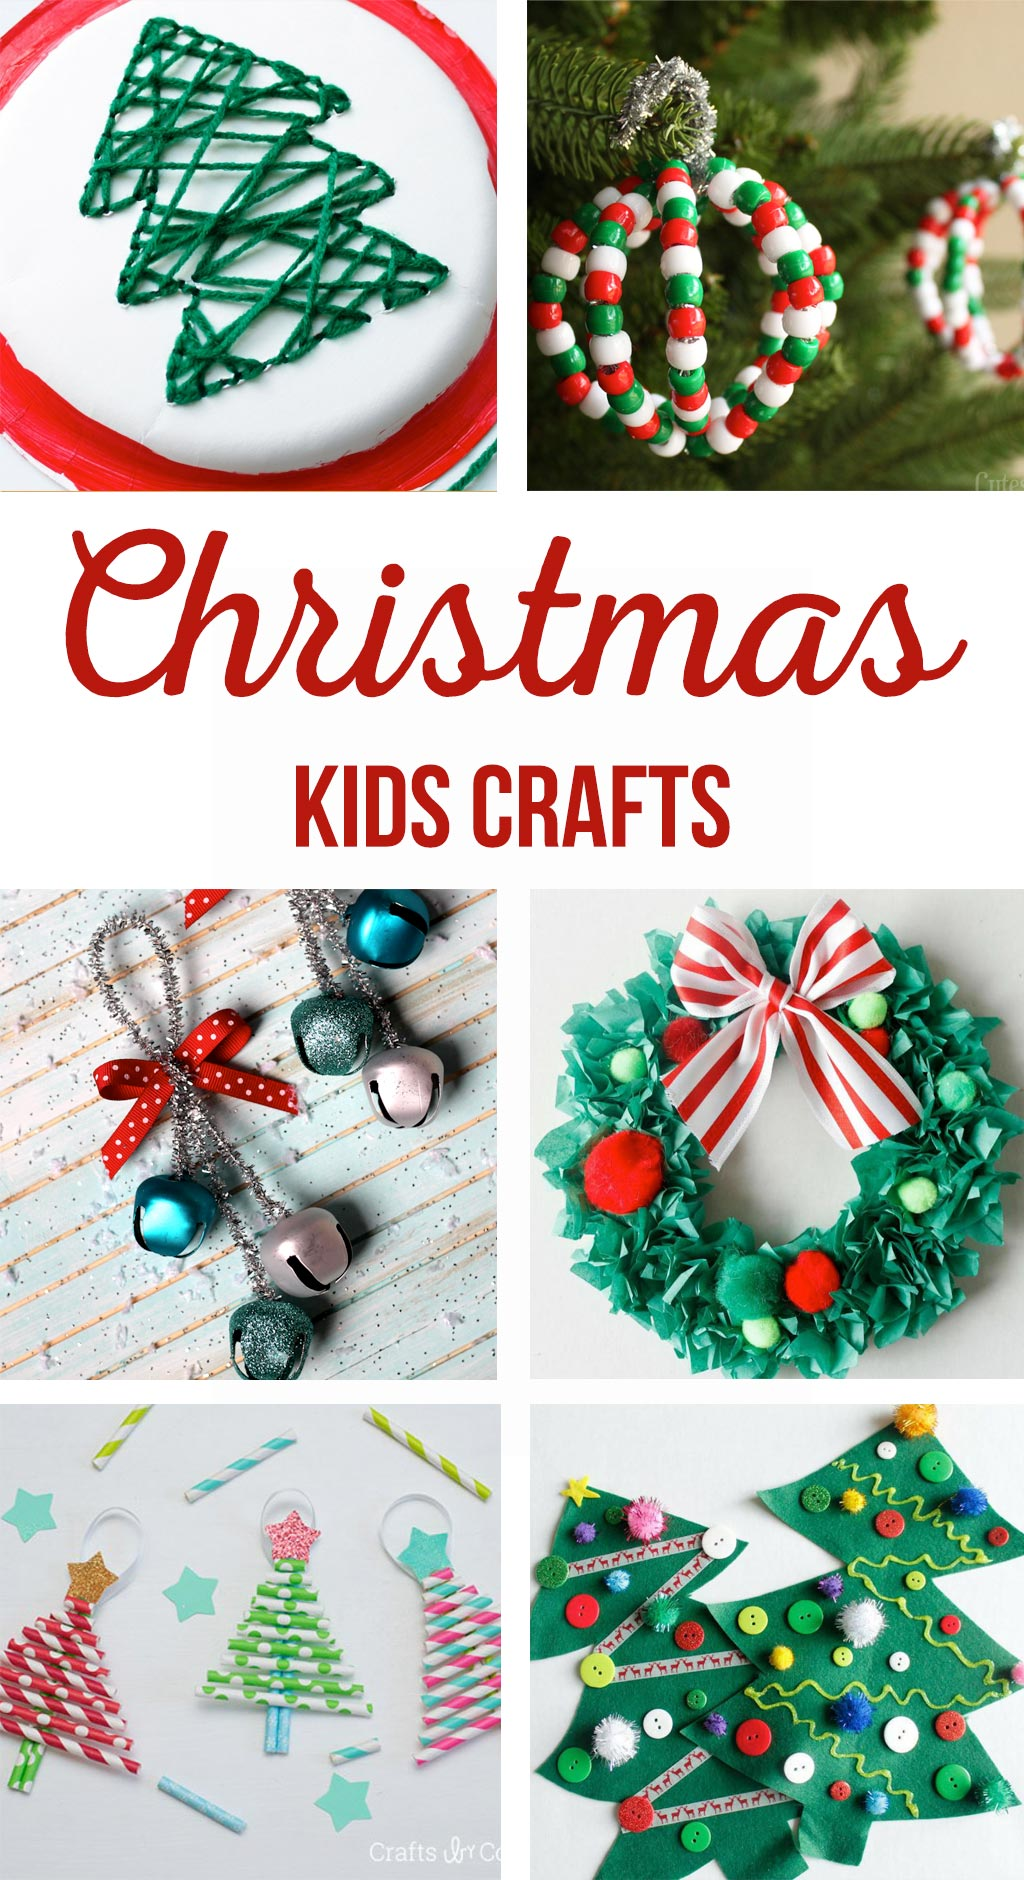 Christmas Kids Crafts - The Crafting Chicks